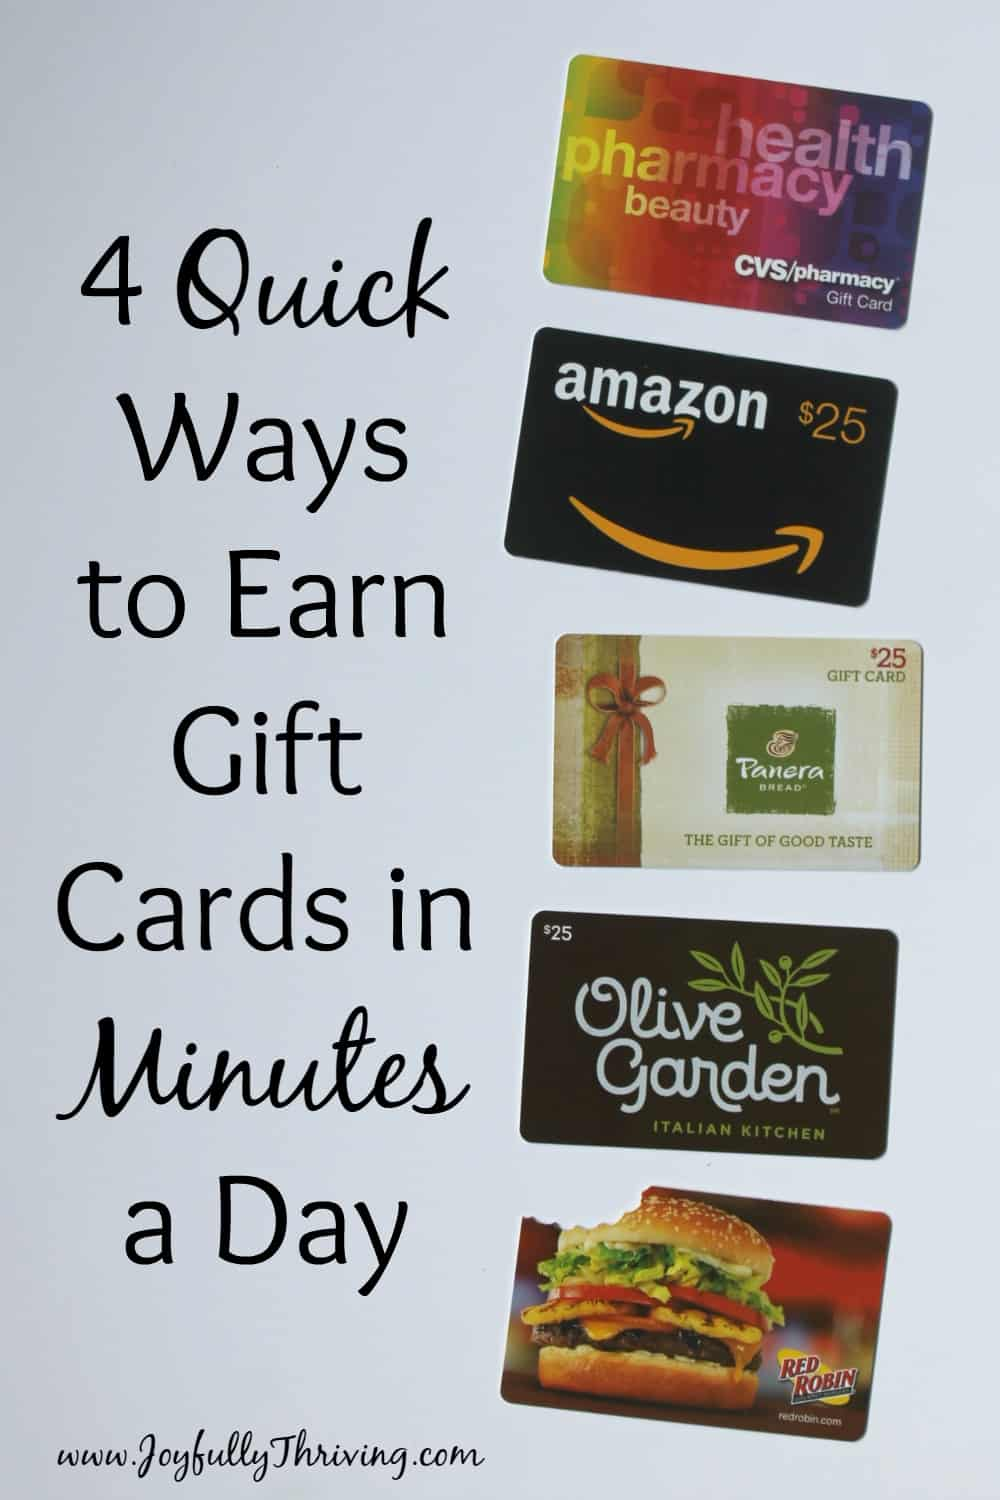 I love getting free gift cards! Great list of ideas that really work, and